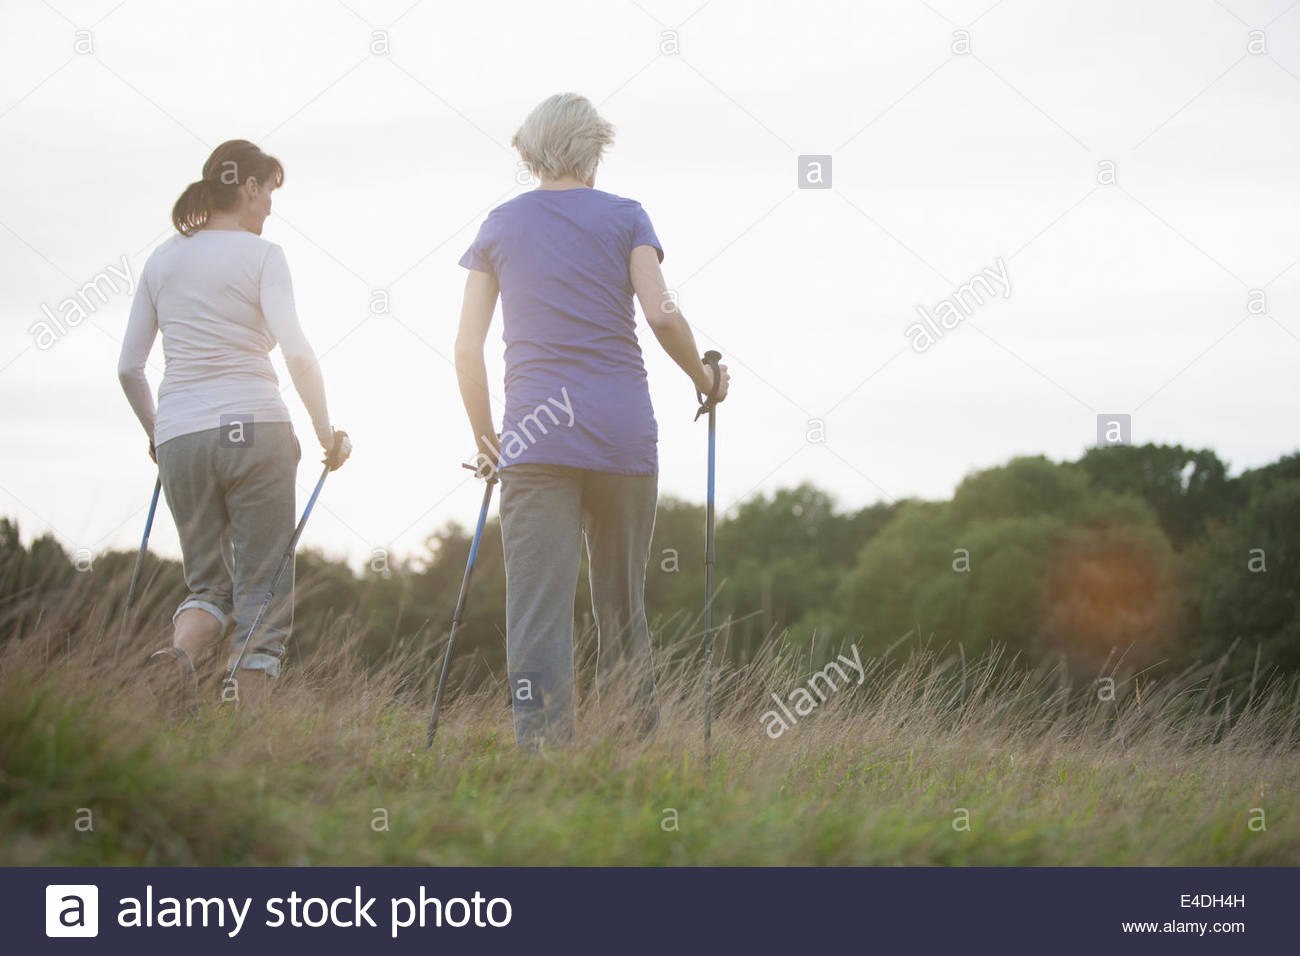 Women hiking together outdoors - Stock Image